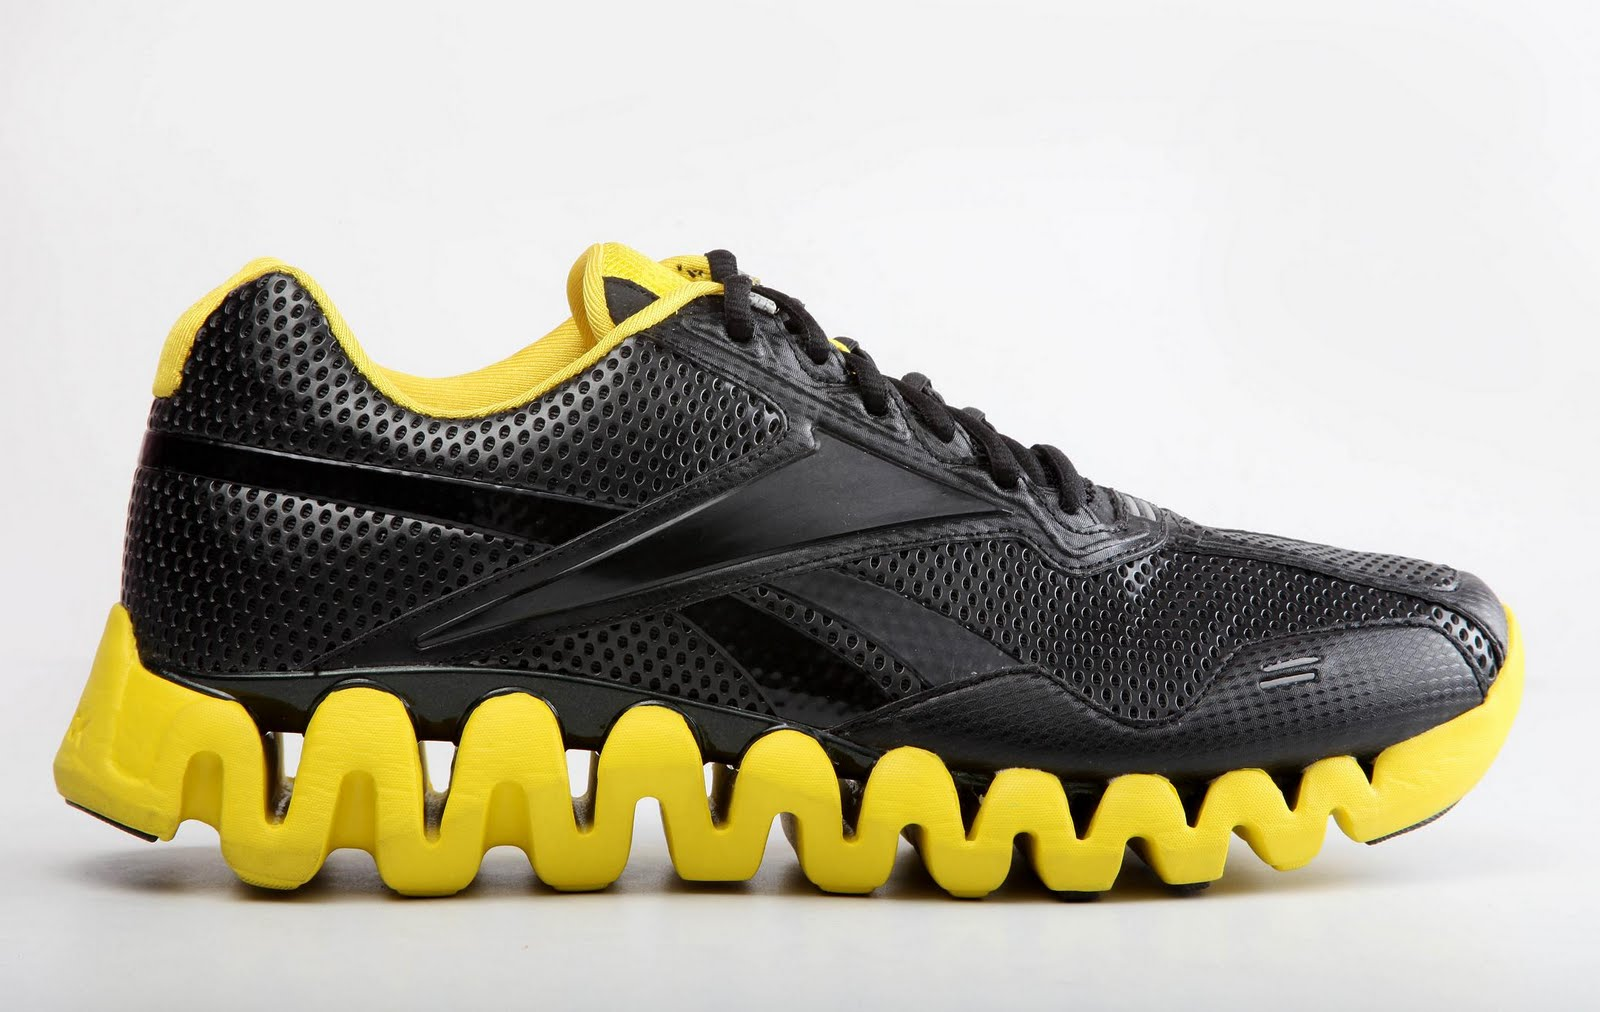 Reebok Zigtech Shoes